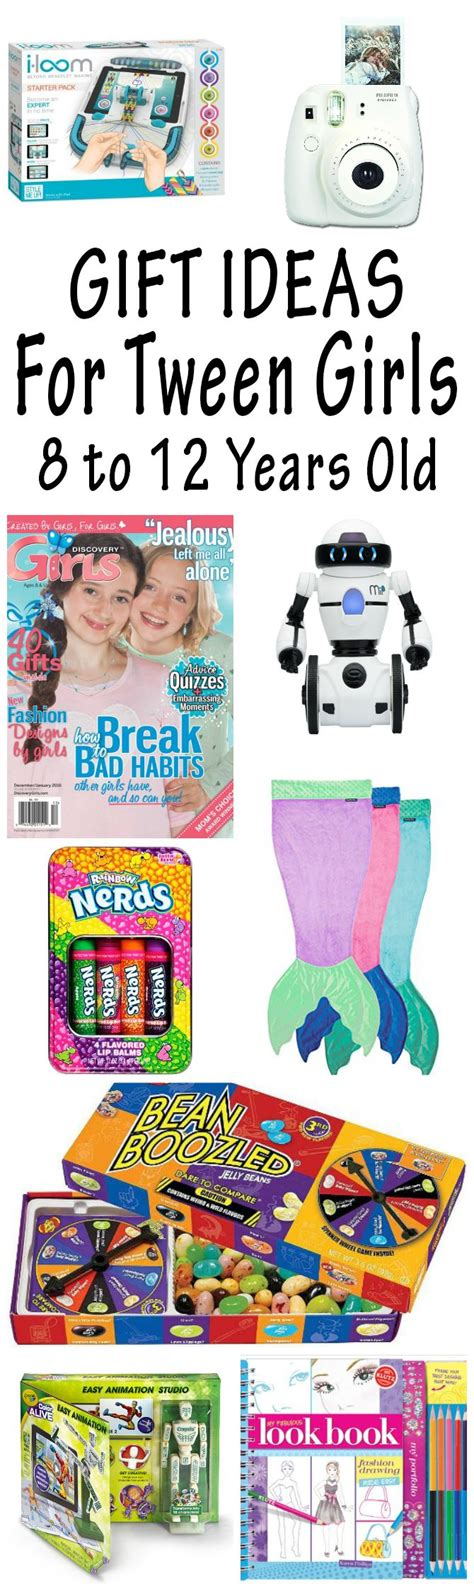 birthday gifts for 73 year old woman best 25 sleepover party ideas for girls tween ideas on